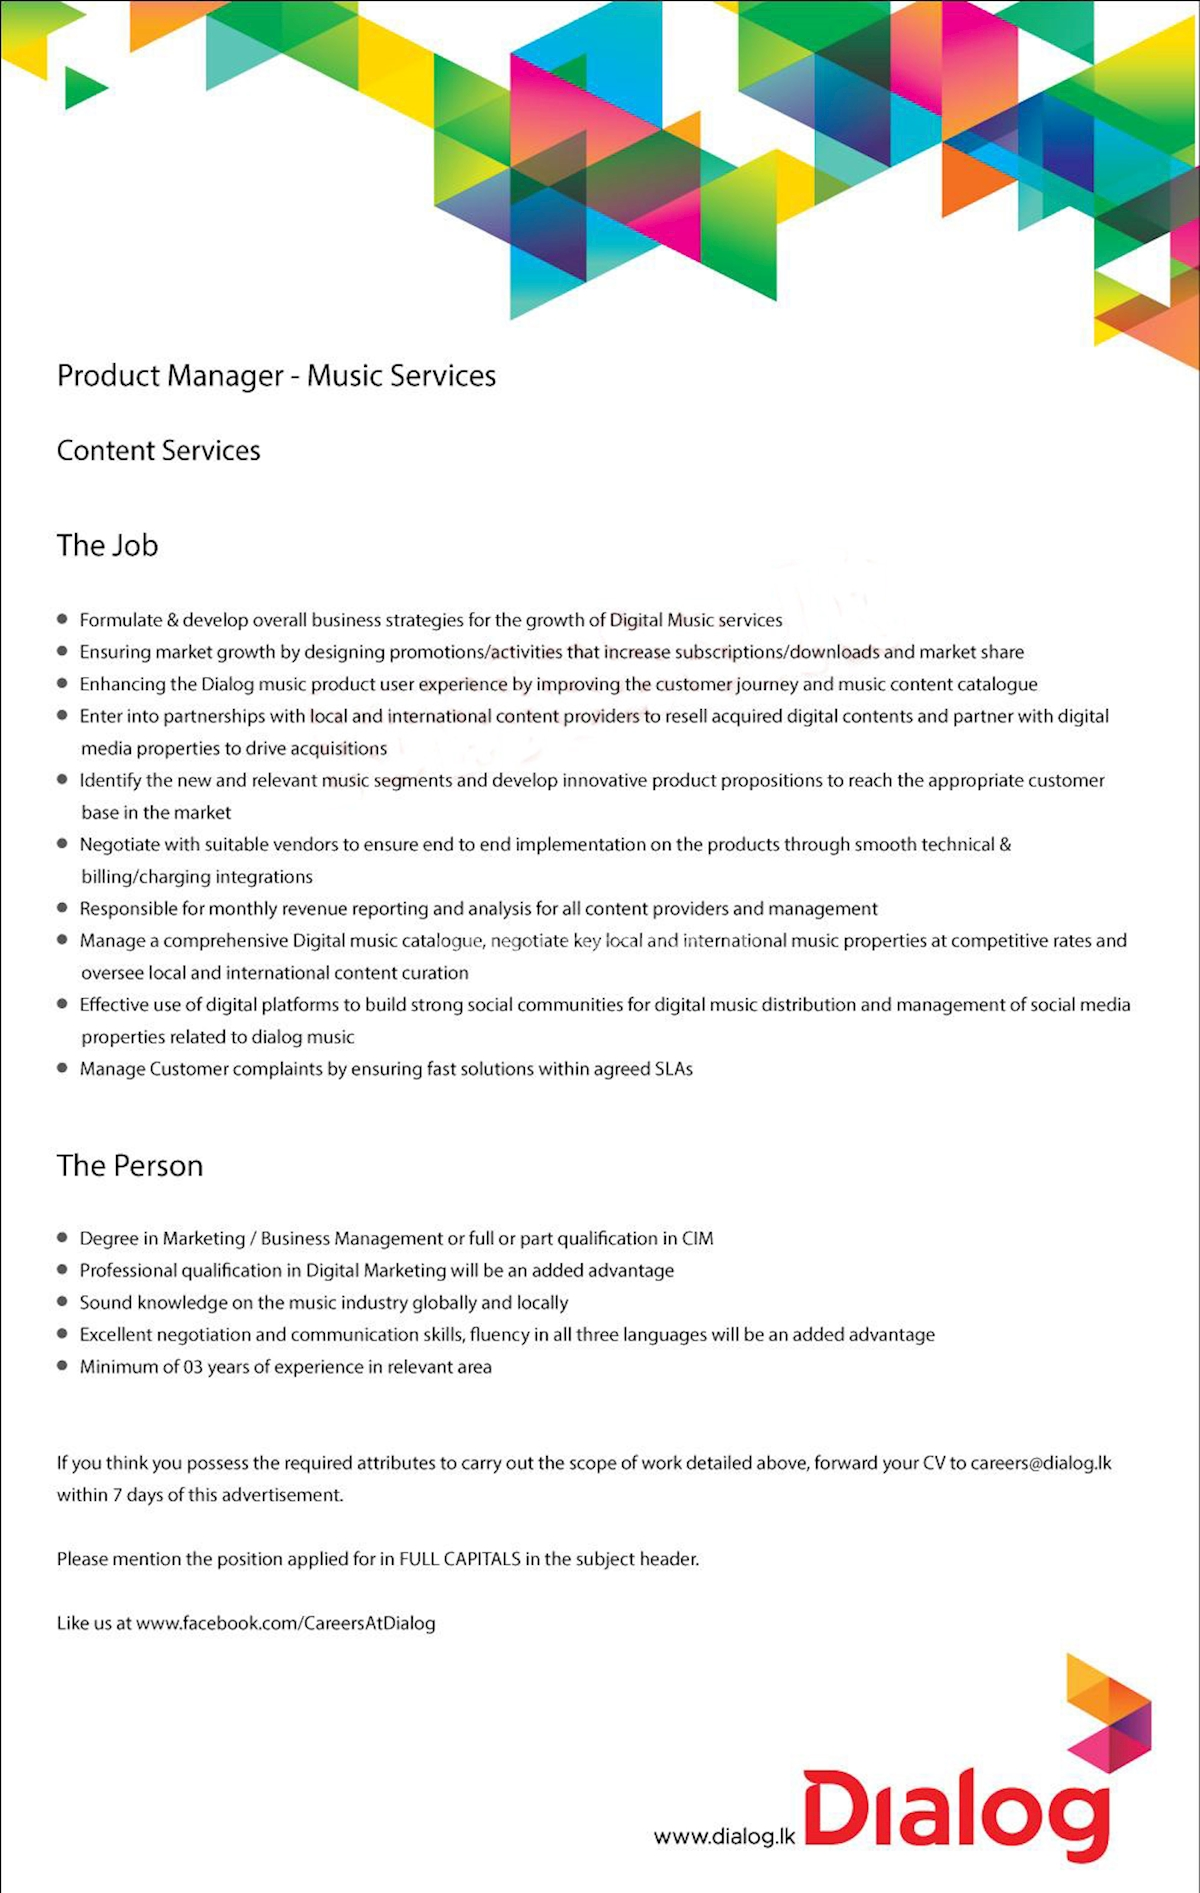 Product Manager - Music Services at Dialog Axiata